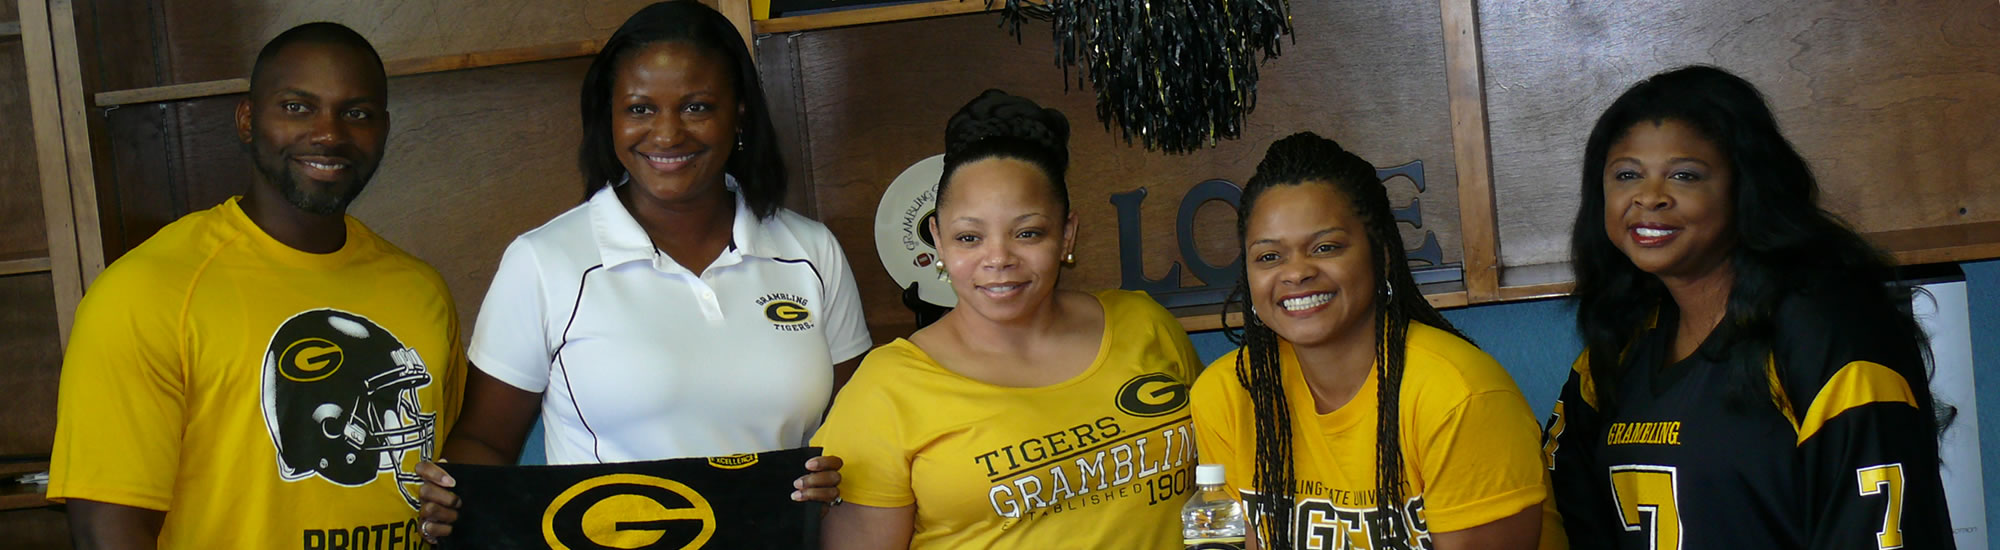 Spirit Thursdays at GSU; show your Tiger Spirit!